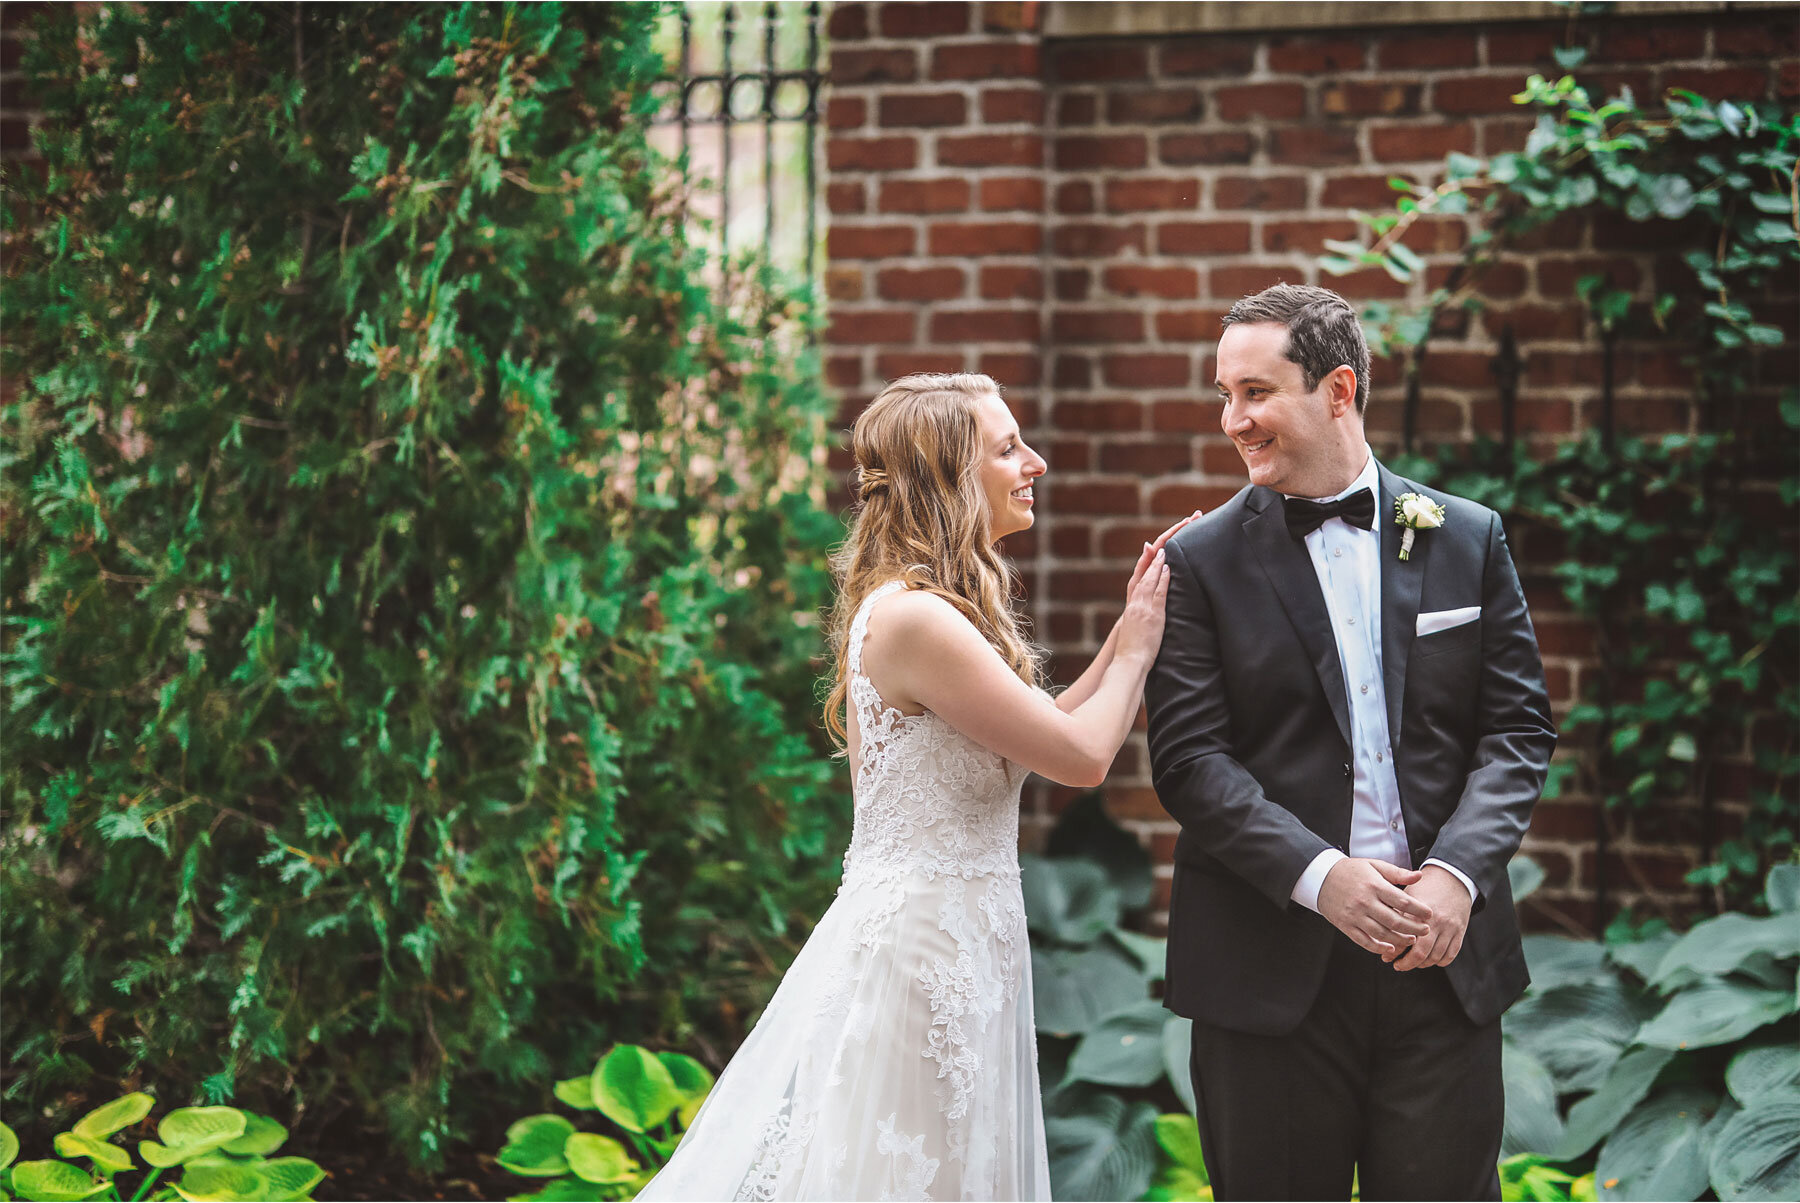 03-Minnesota-Wedding-Vick-Photography-Minneapolis-Event-Centers-Bride-Groom-First-Look-Courtyard-Amy-and-Avi.jpg